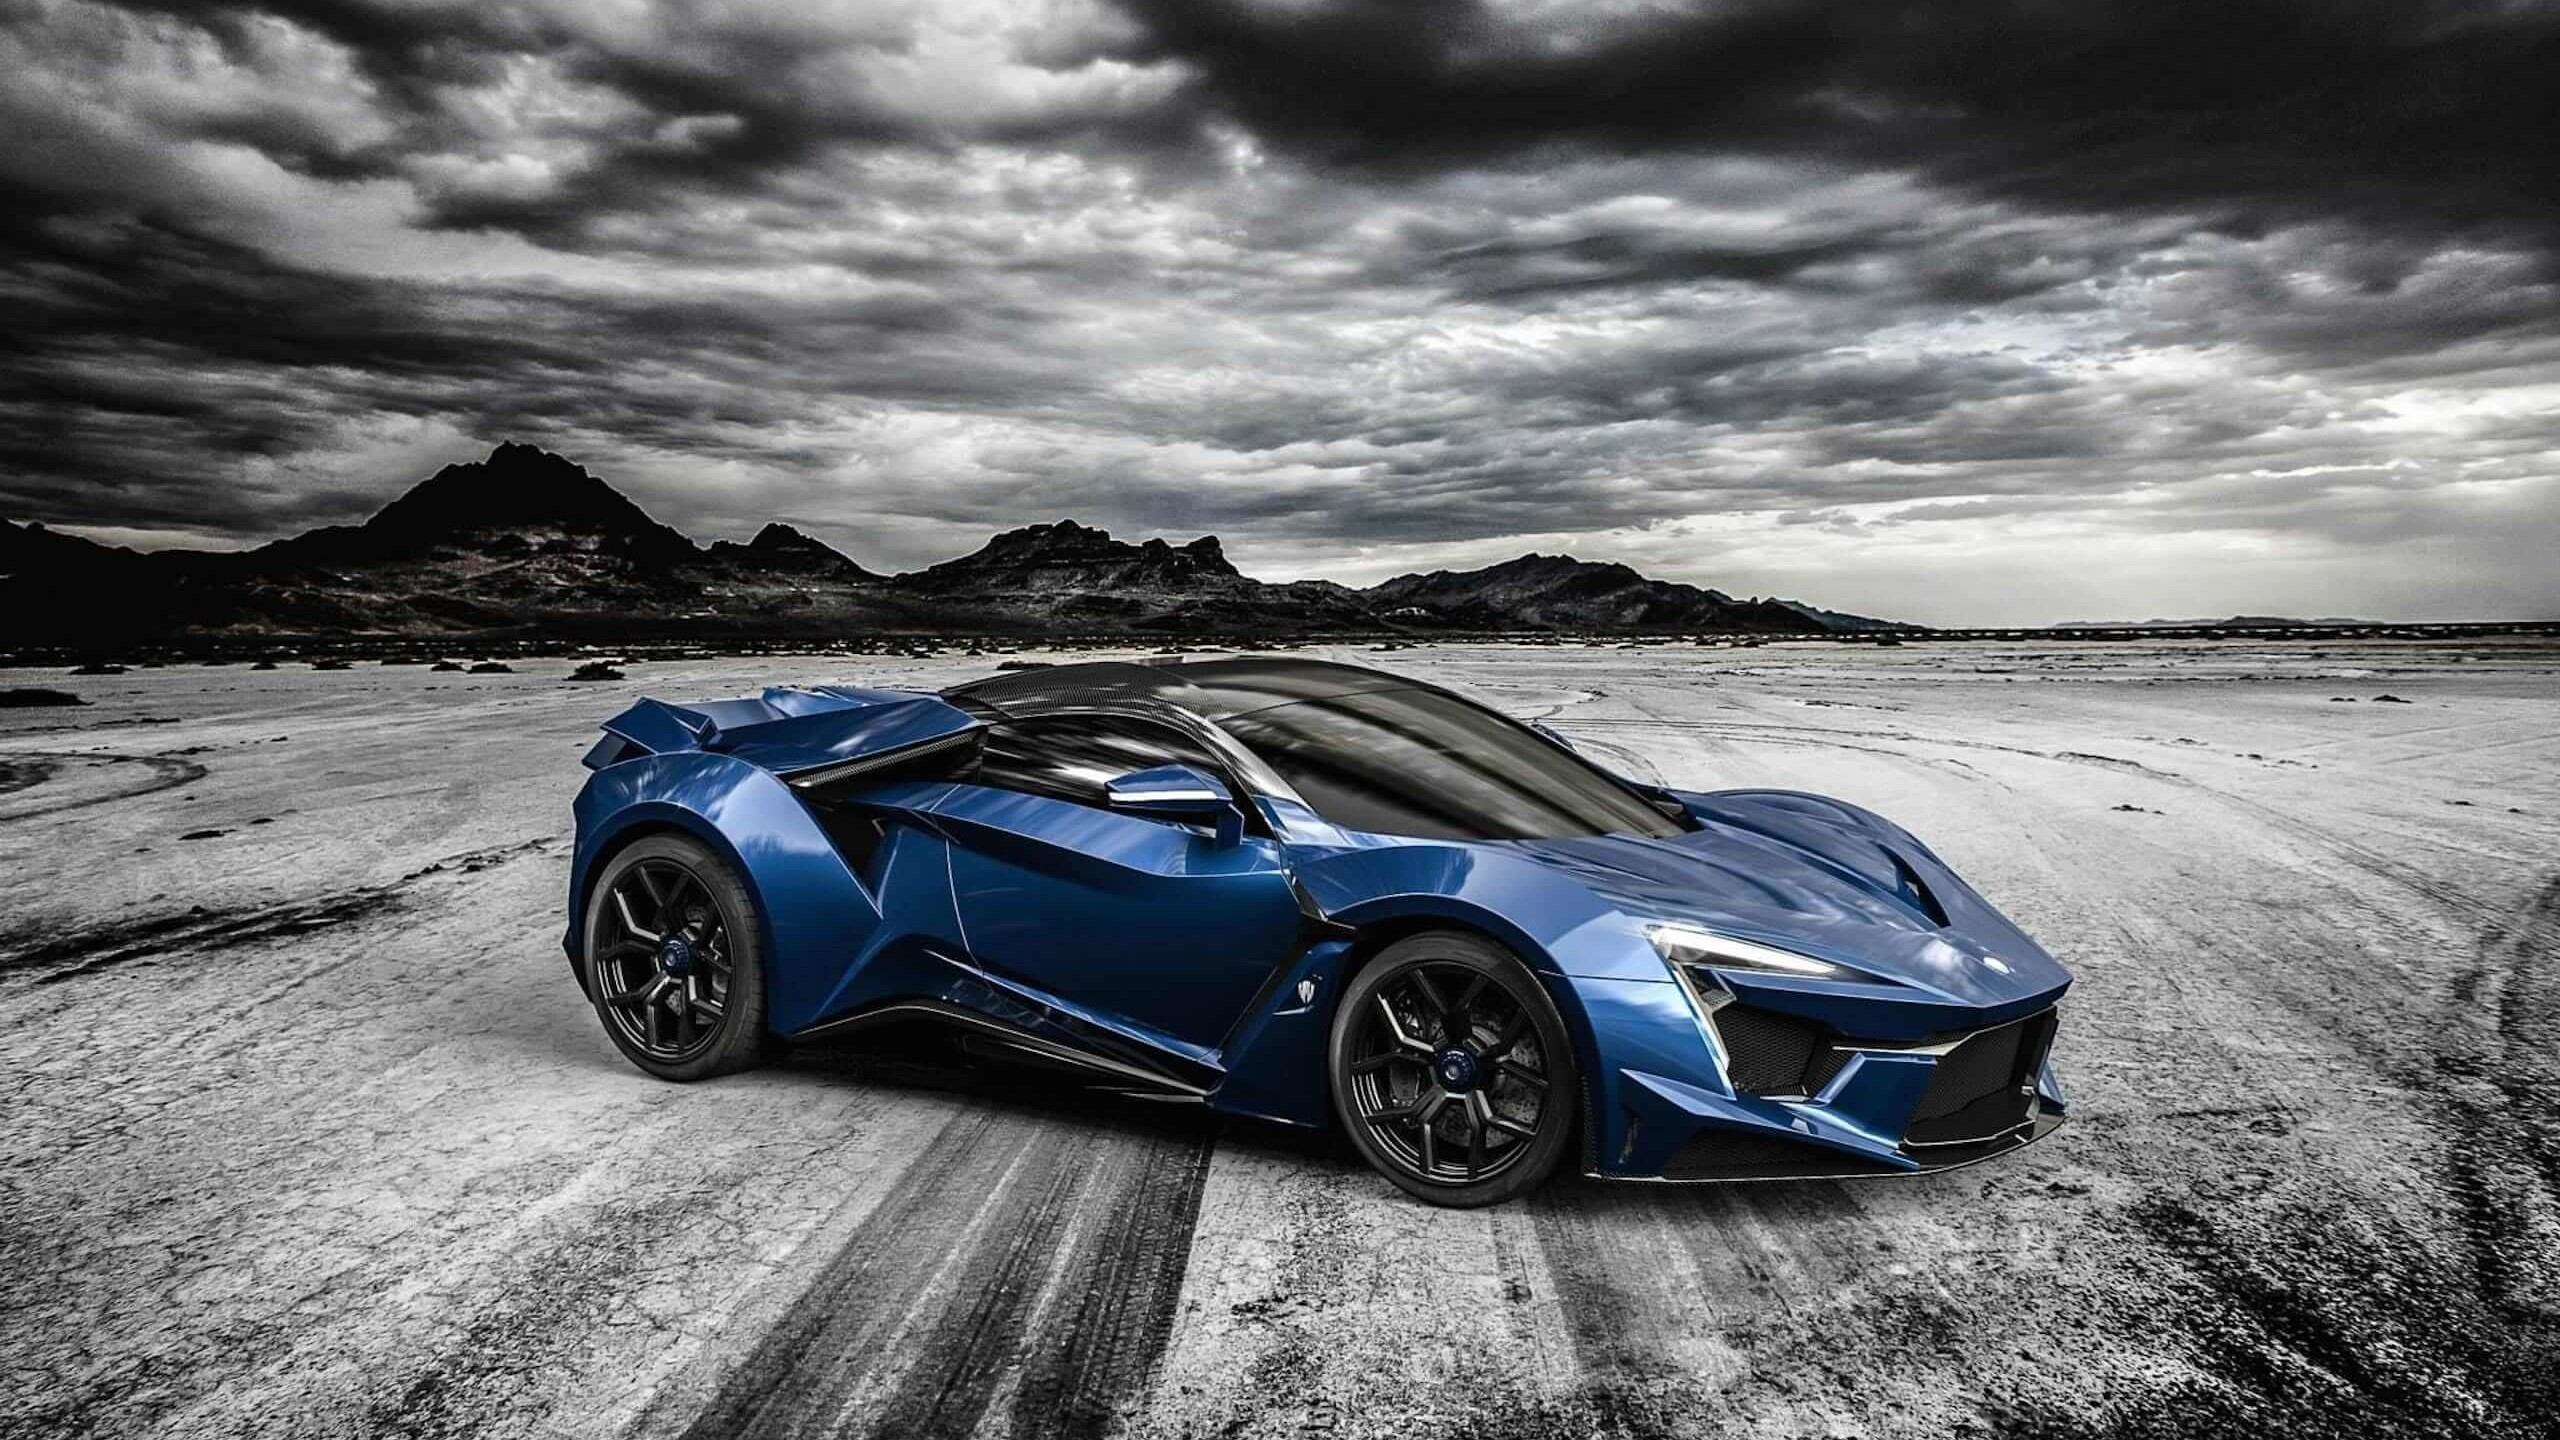 FENYR Supersport Wallpaper for Desktop 2560x1440